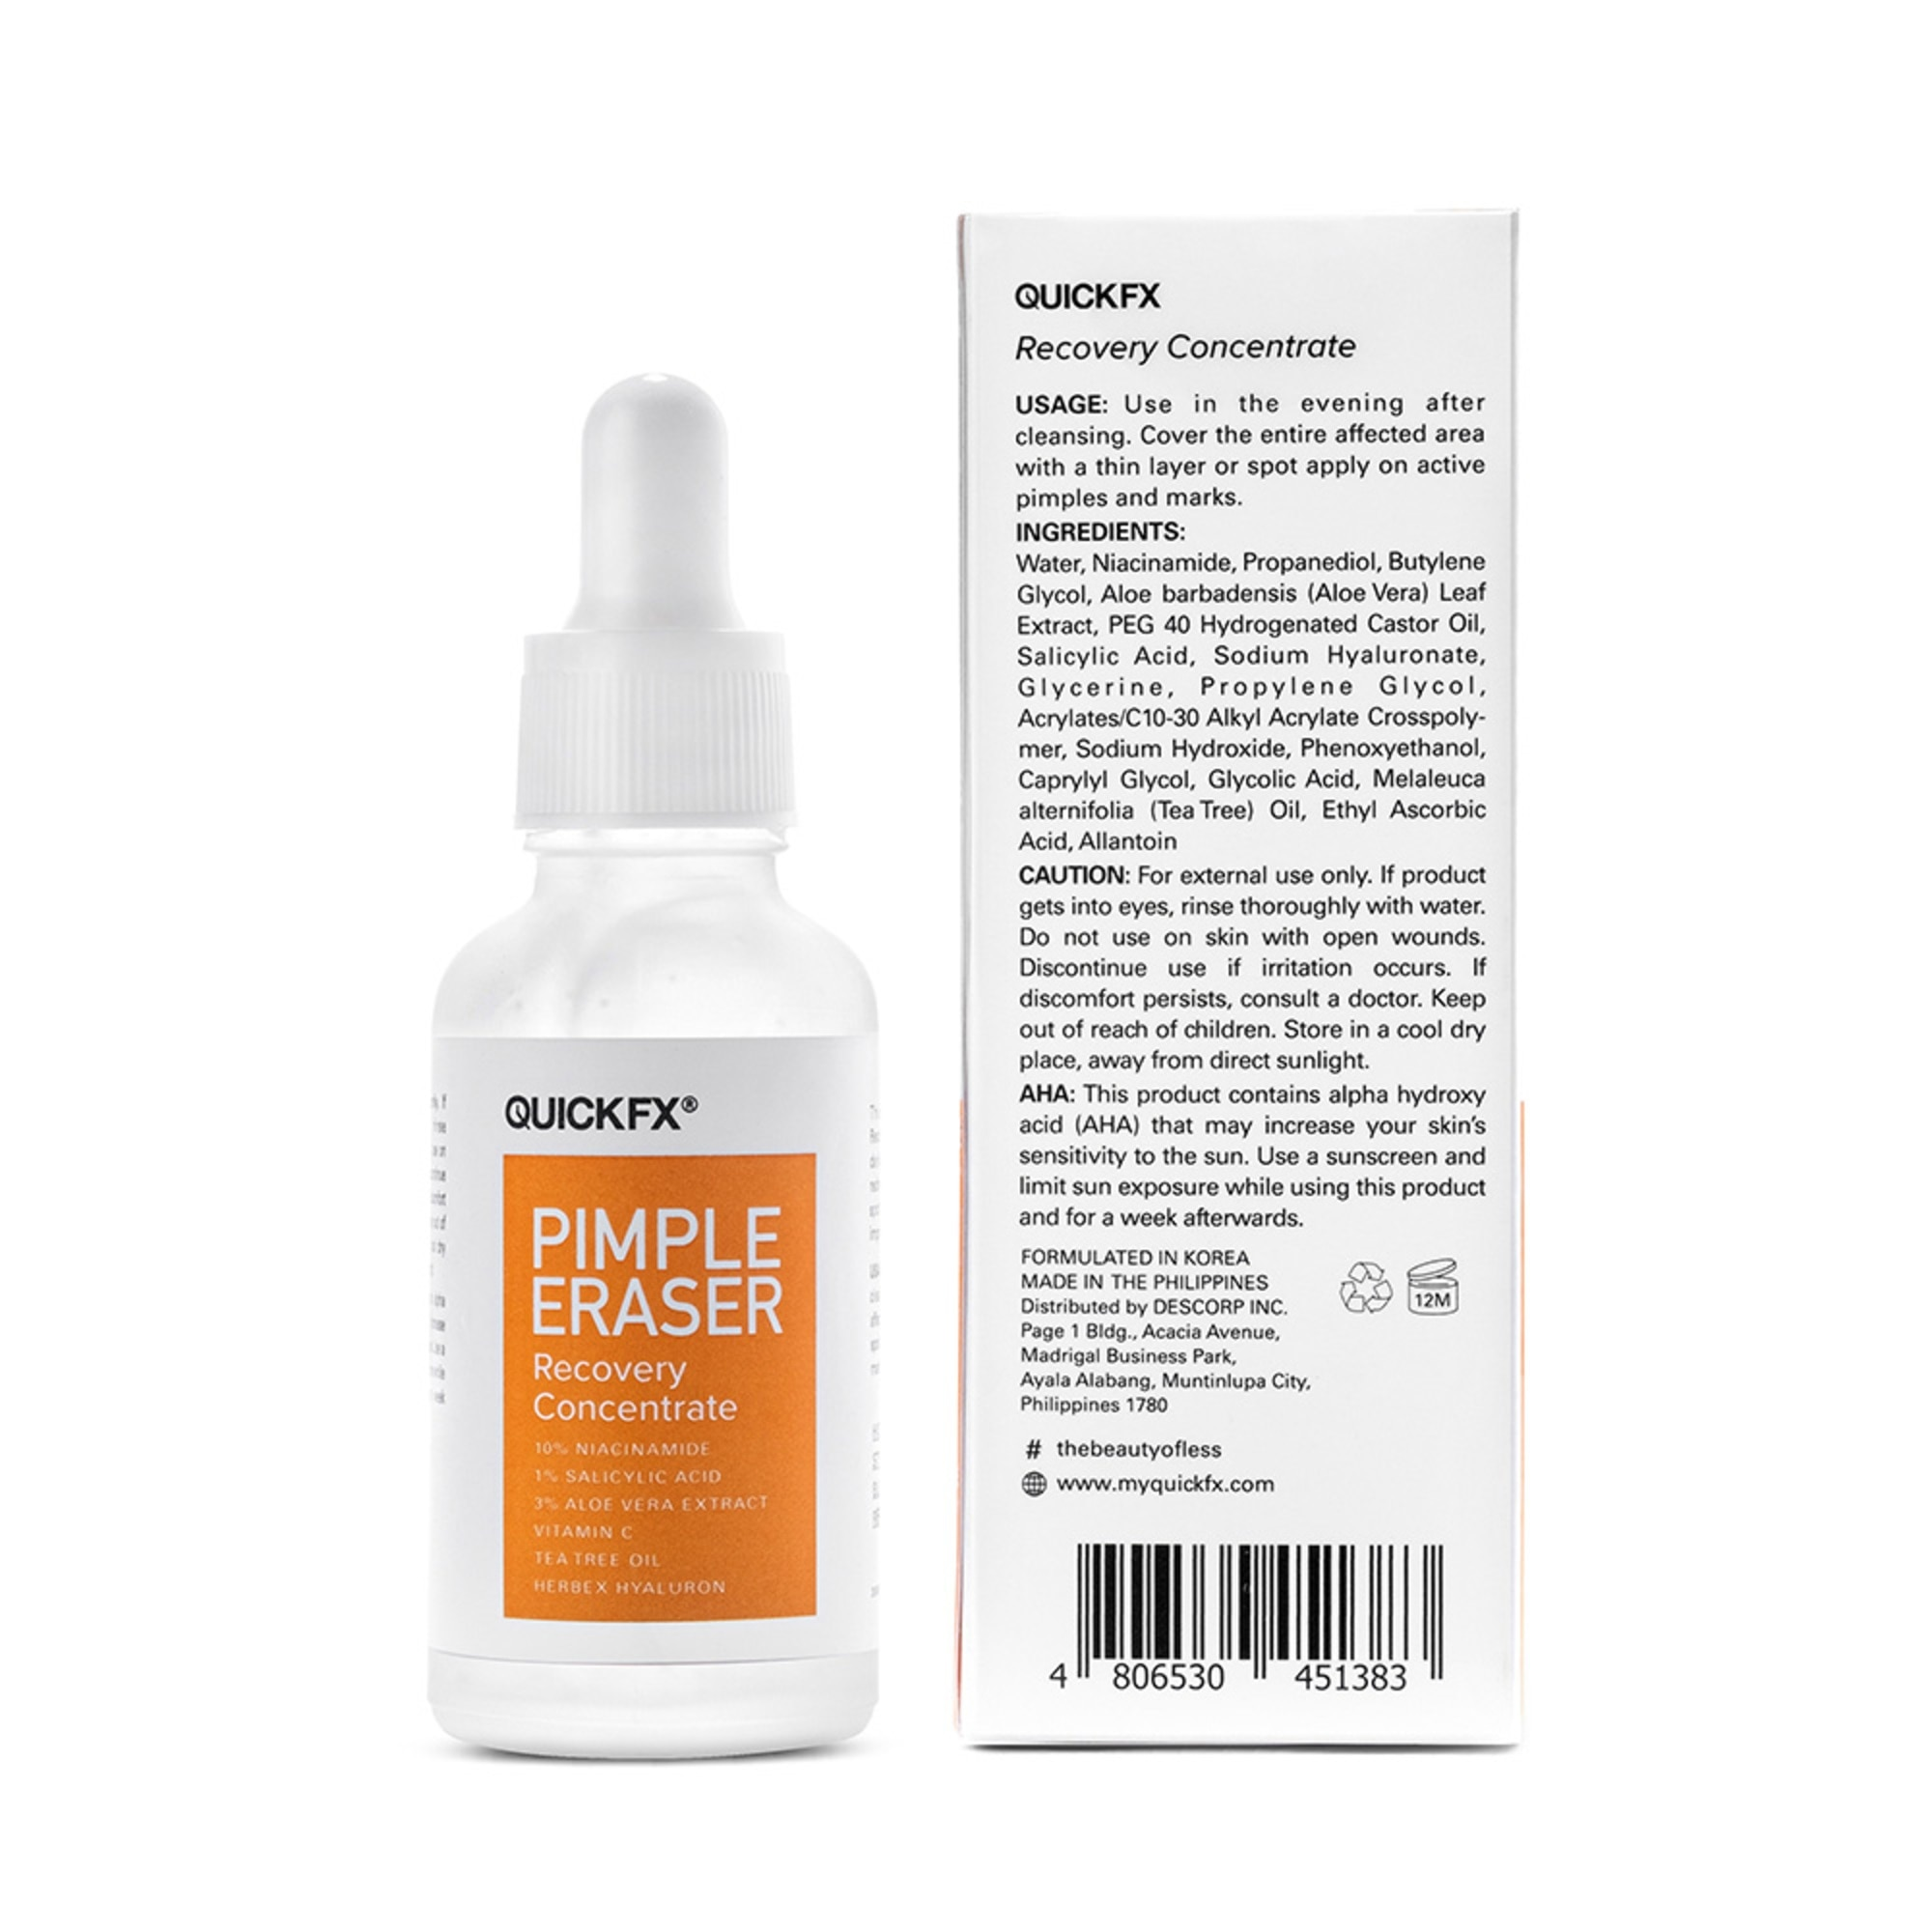 QUICKFXPimple Eraser Recovery Concentrate 30ml,Facial TreatmentBest Selling Products